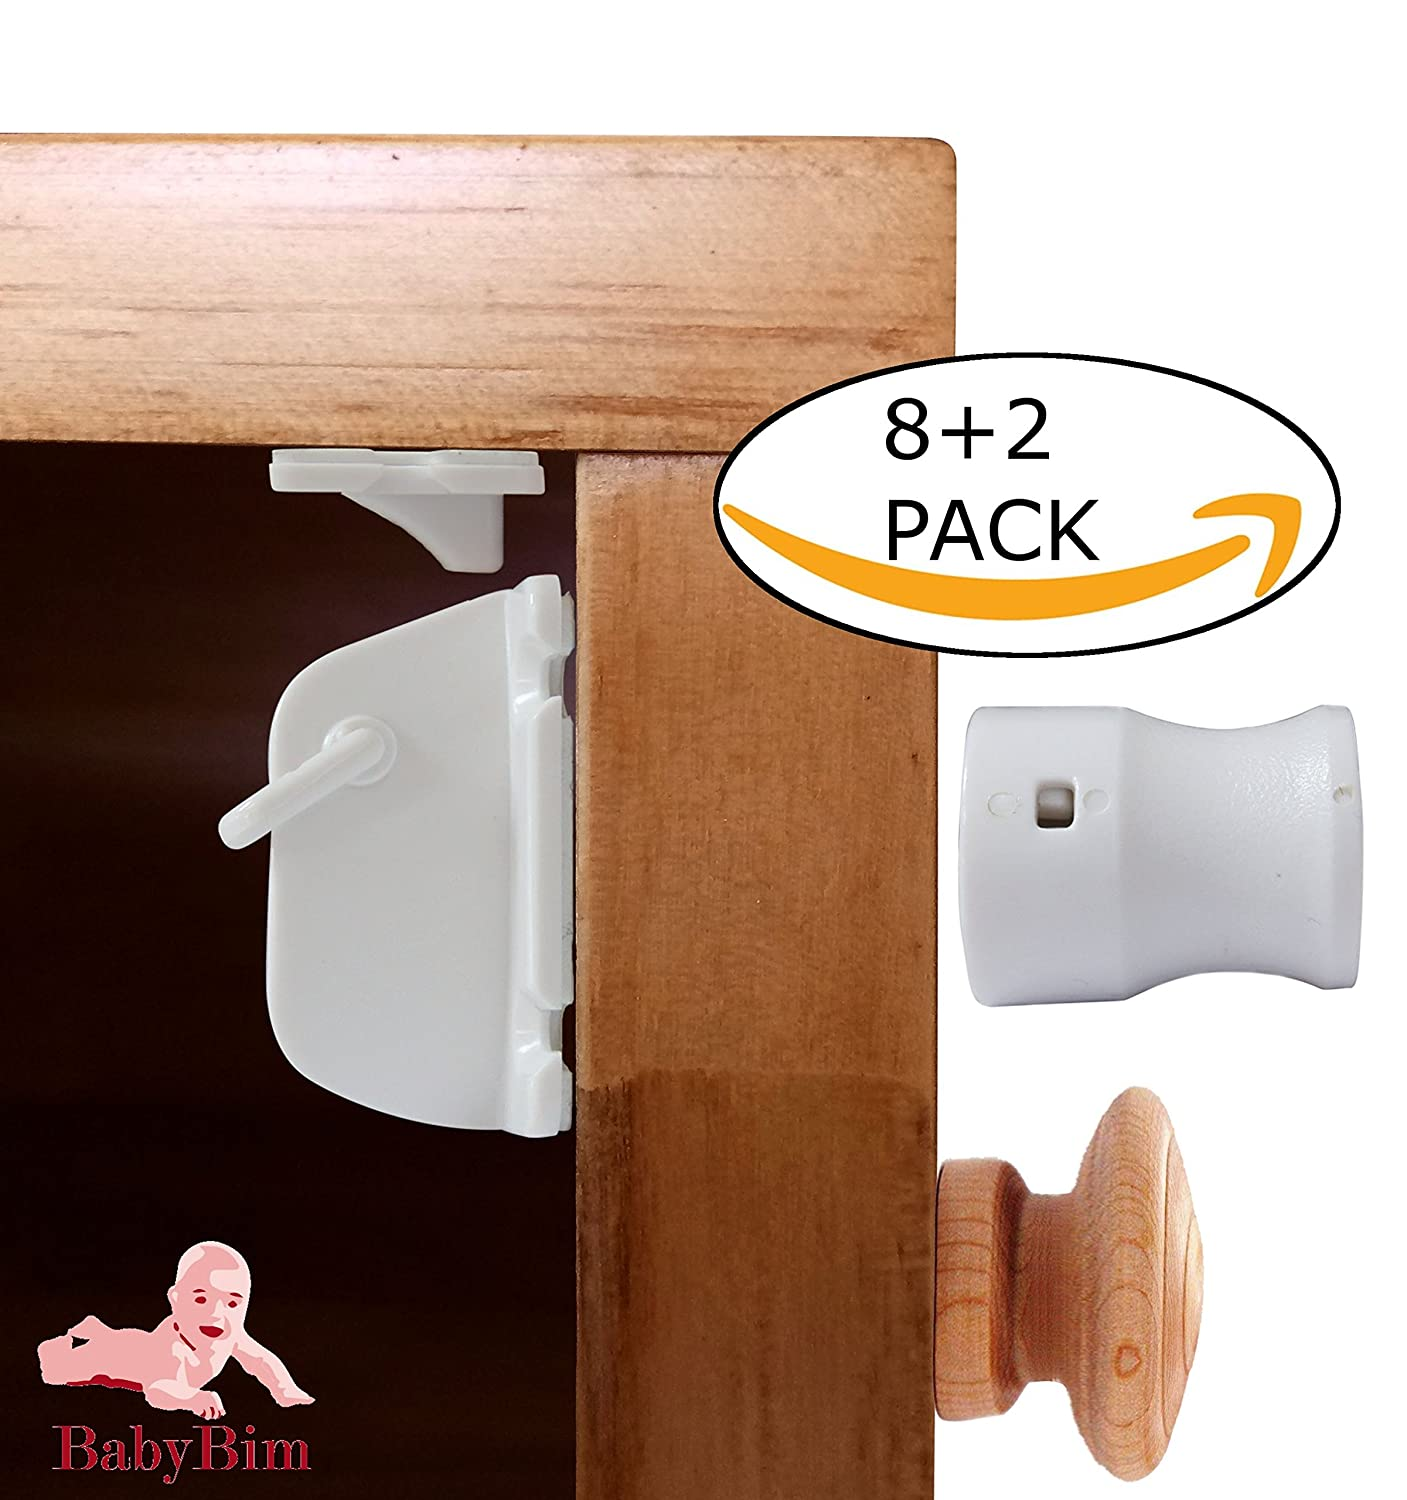 BabyBim Child Safety Strong Hidden Magnetic Lock for Kitchen & Livingroom  Cabinet Doors and...